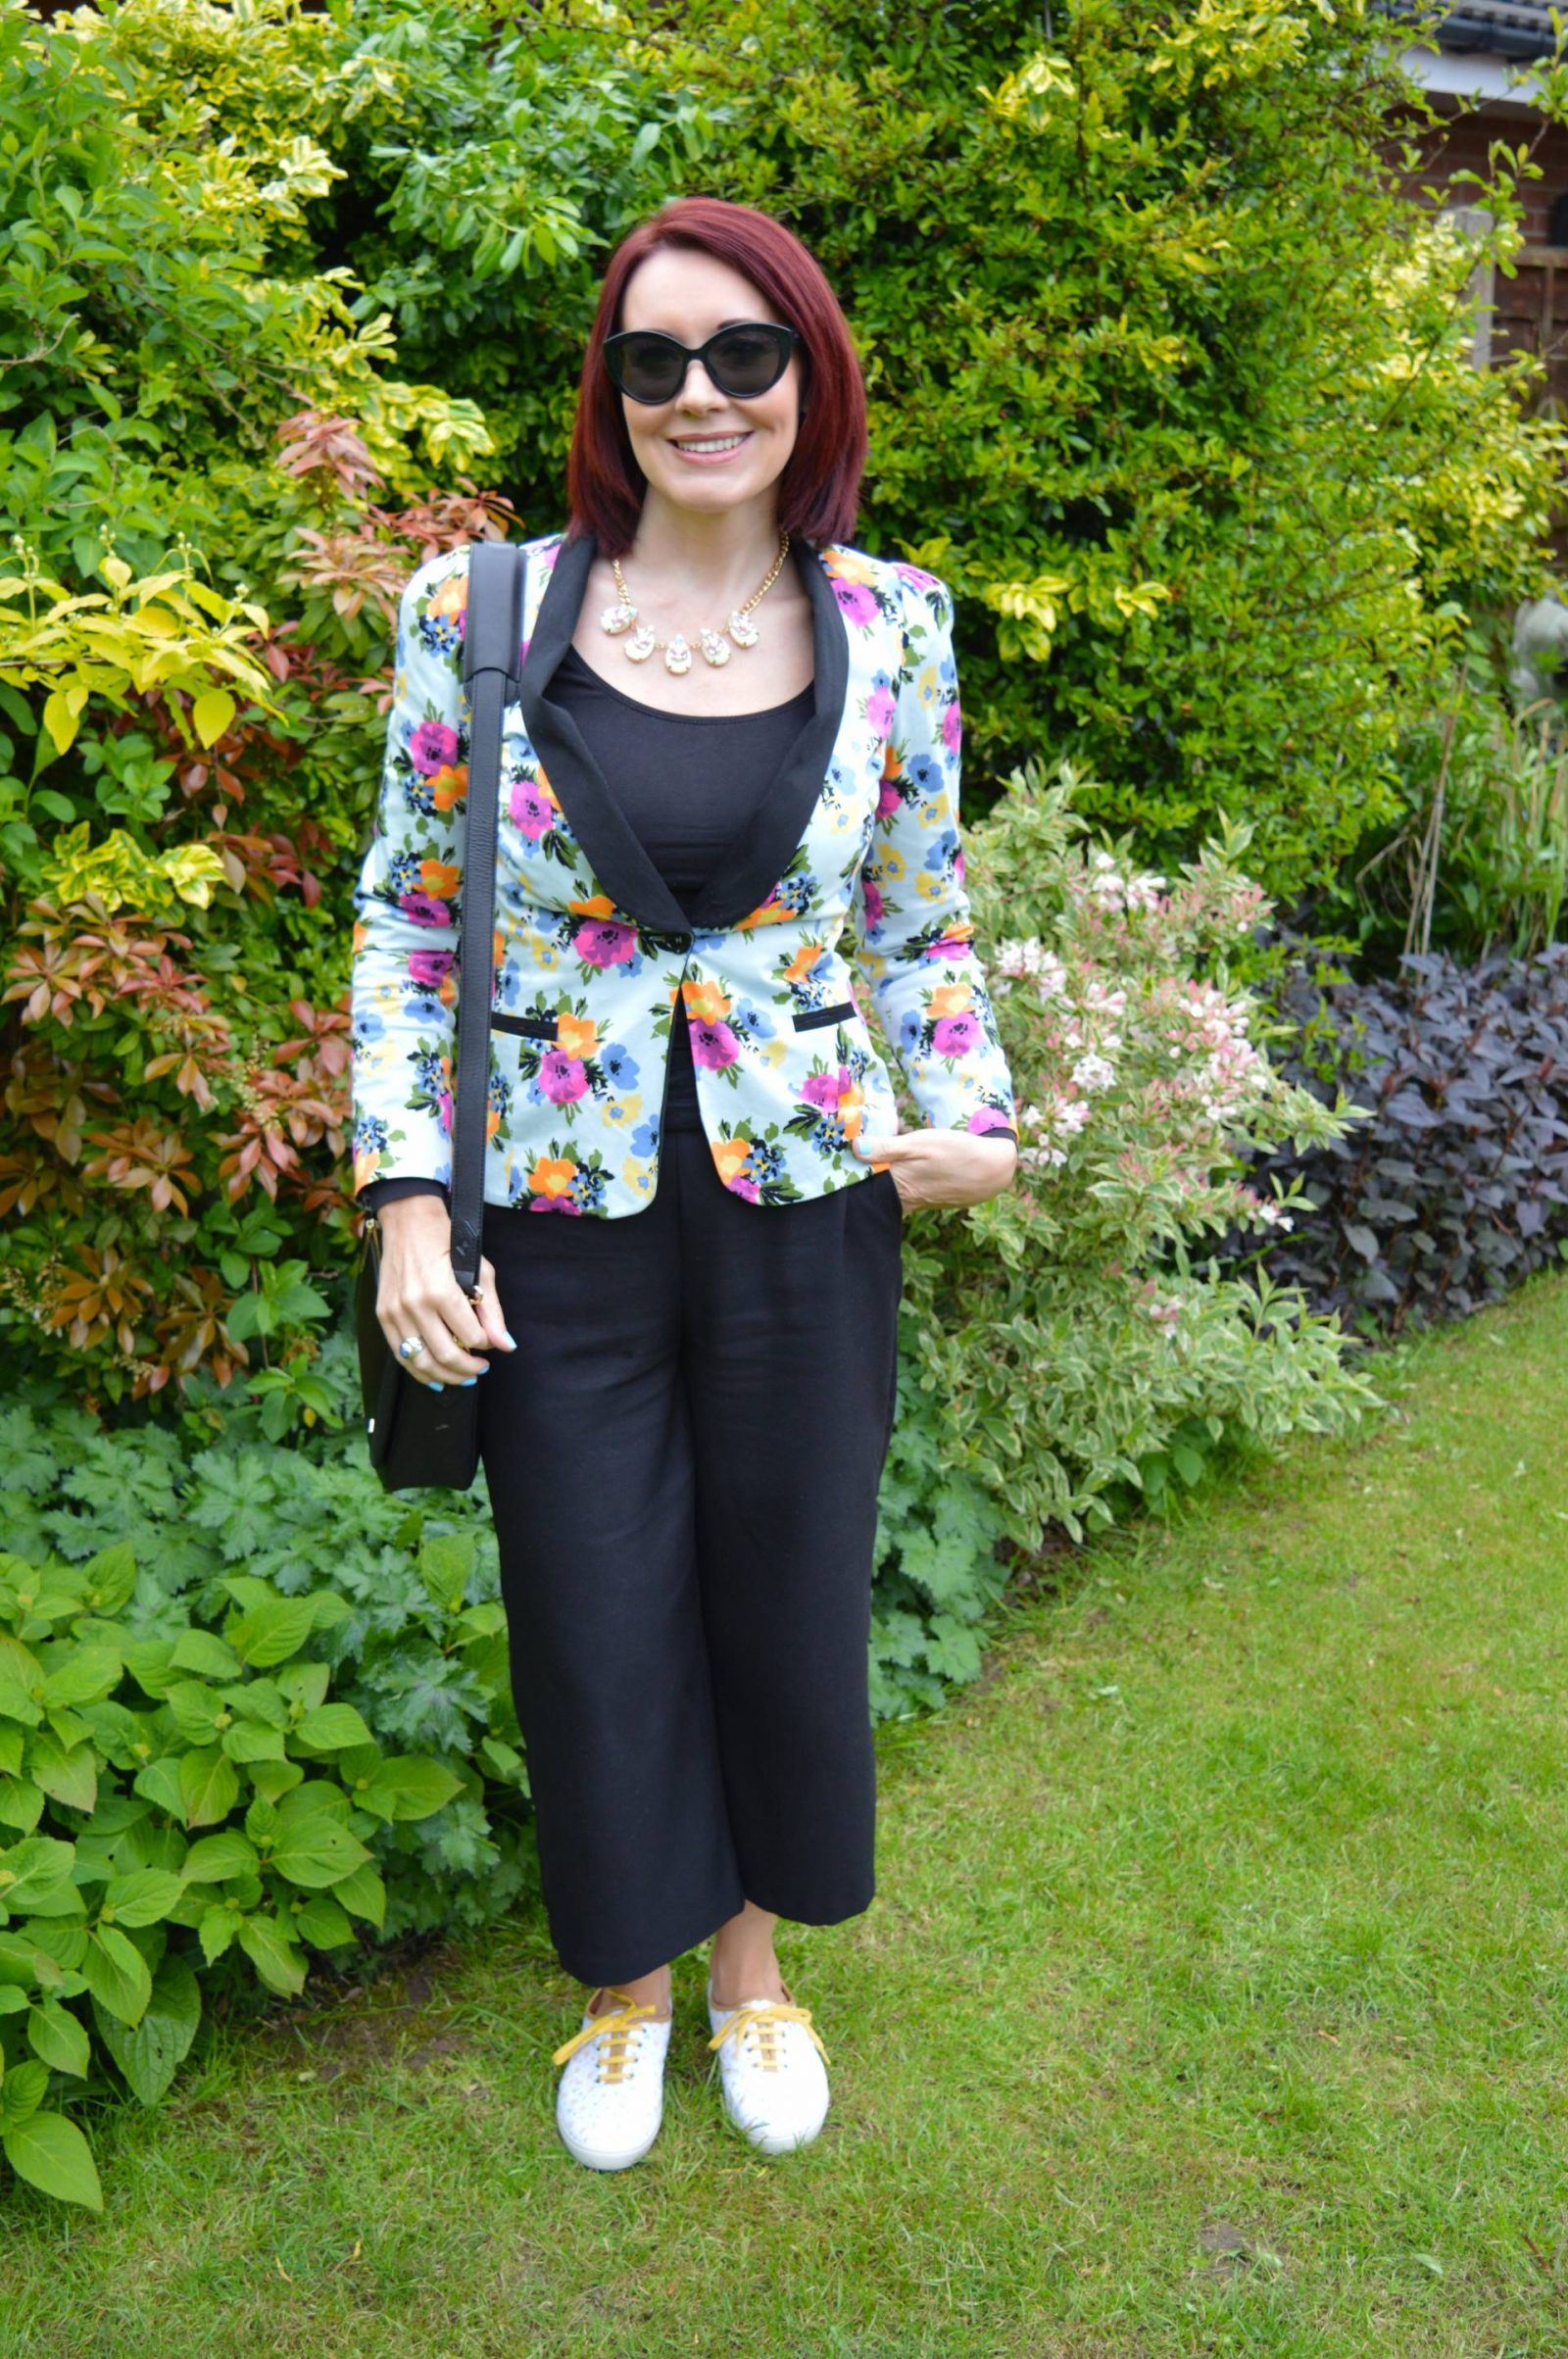 Styling floral prints for a comfy office-appropriate look